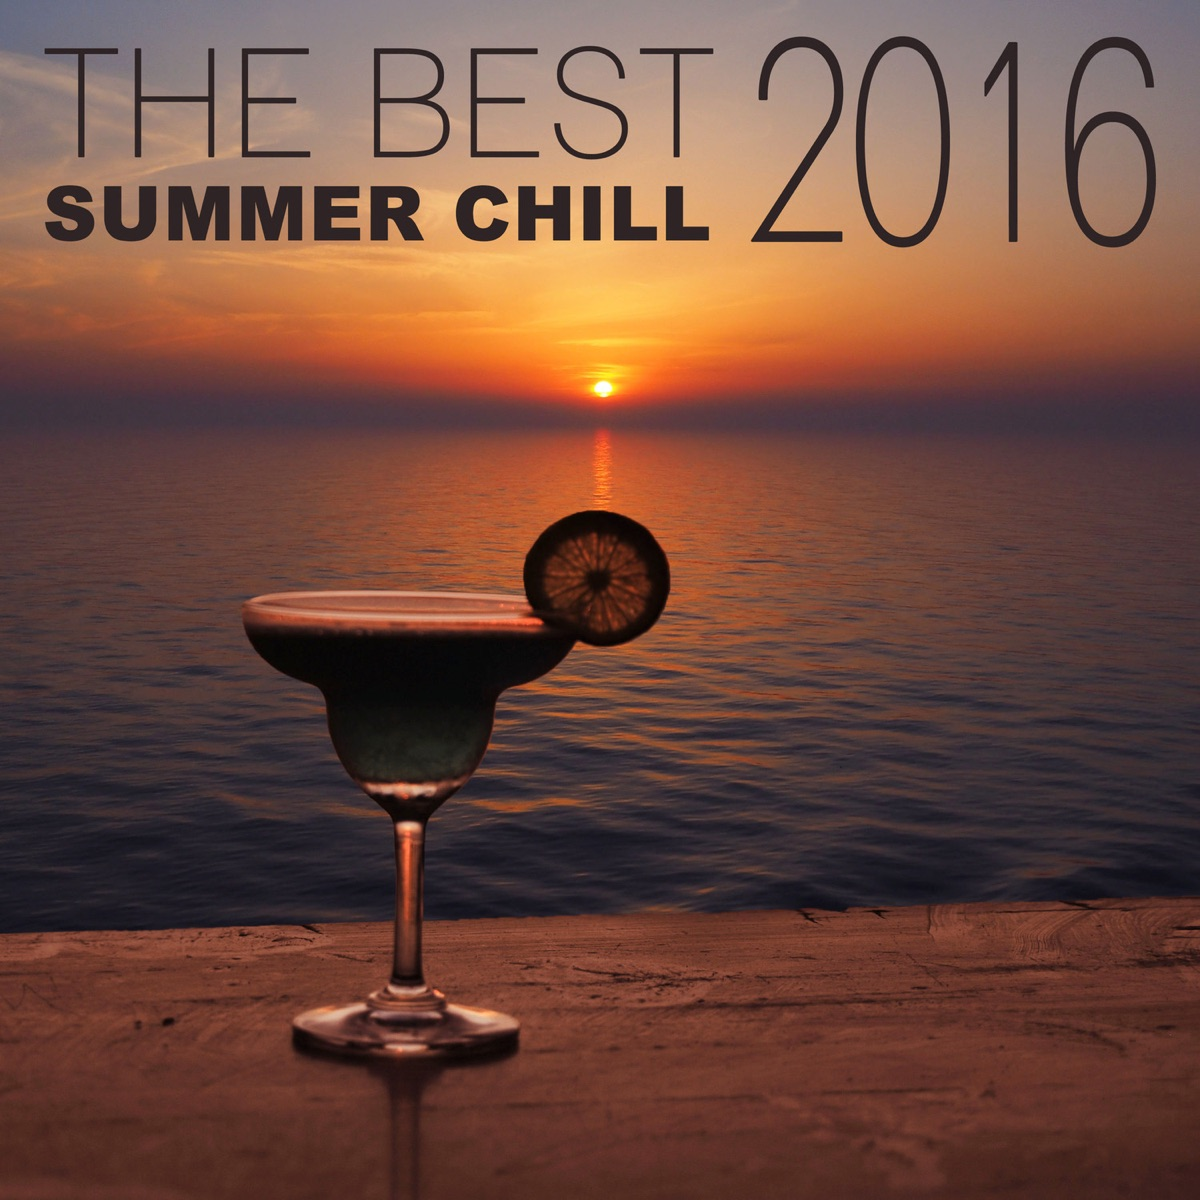 The Best Summer Chill 2016: Chillout & Lounge Music, Café Ibiza del